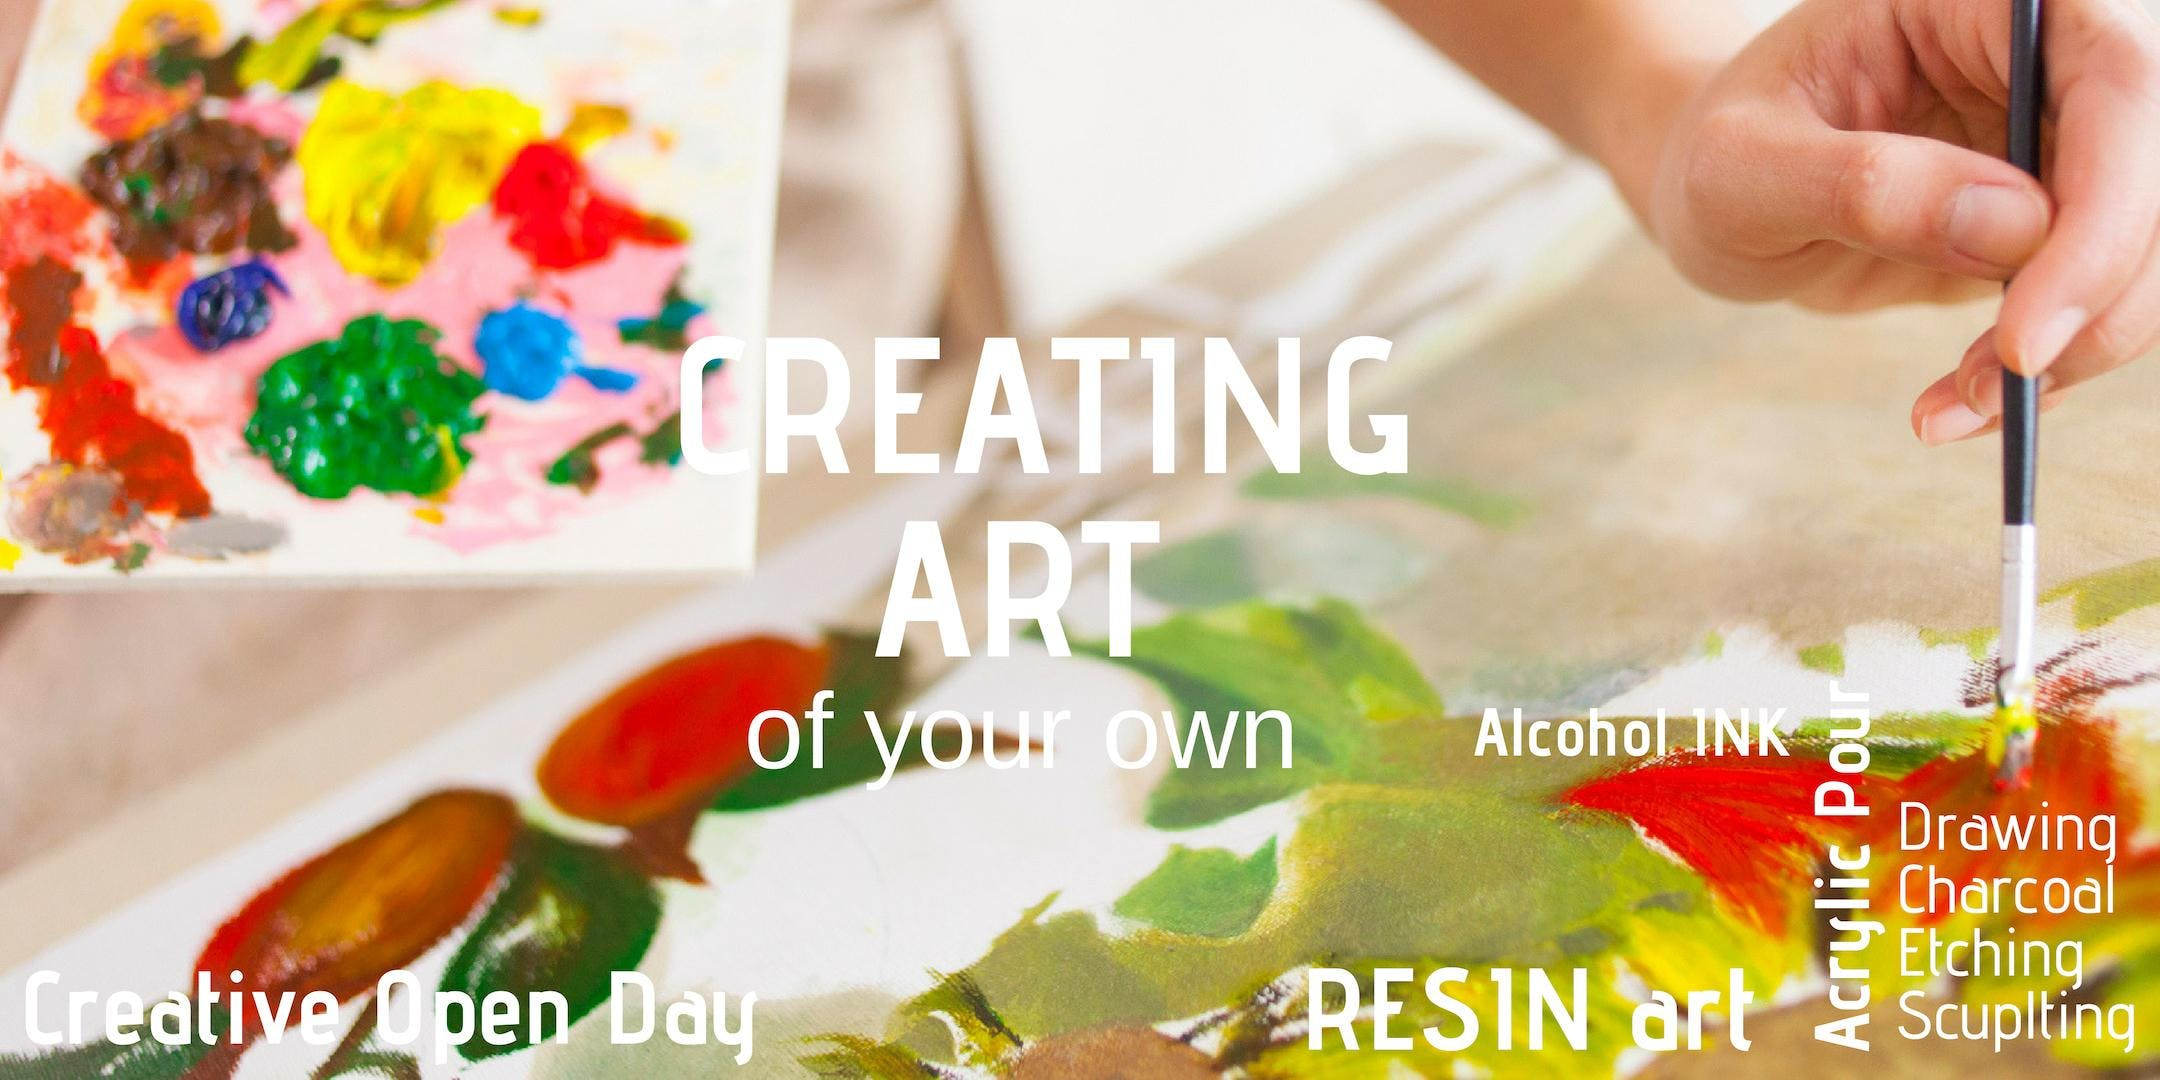 Creating Art - Sunday 17th Feb 10:00am